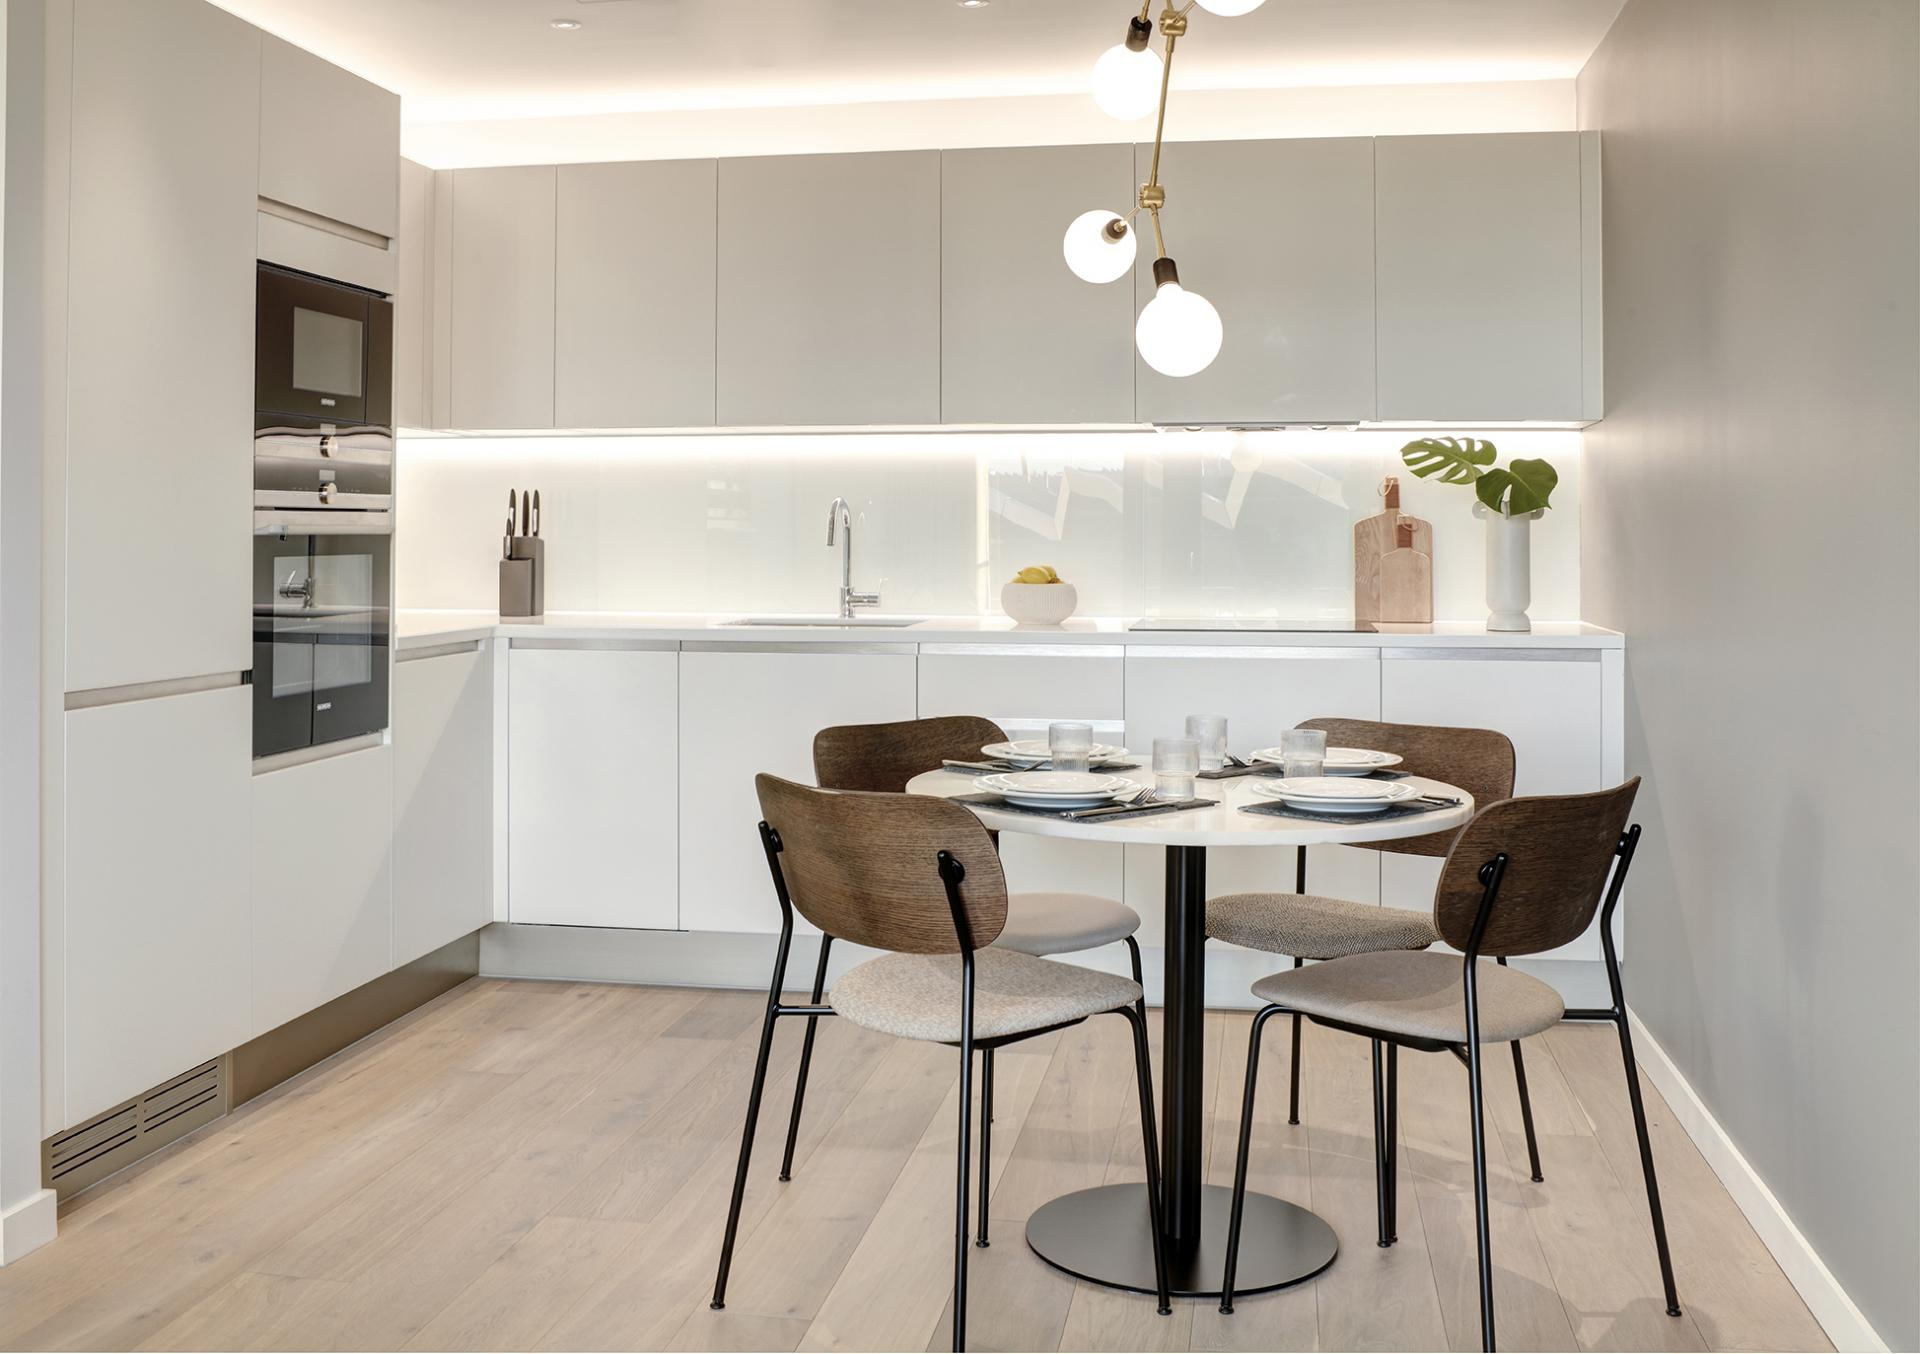 Kitchen diner at STAY Camden Serviced Apartments, Camden, London